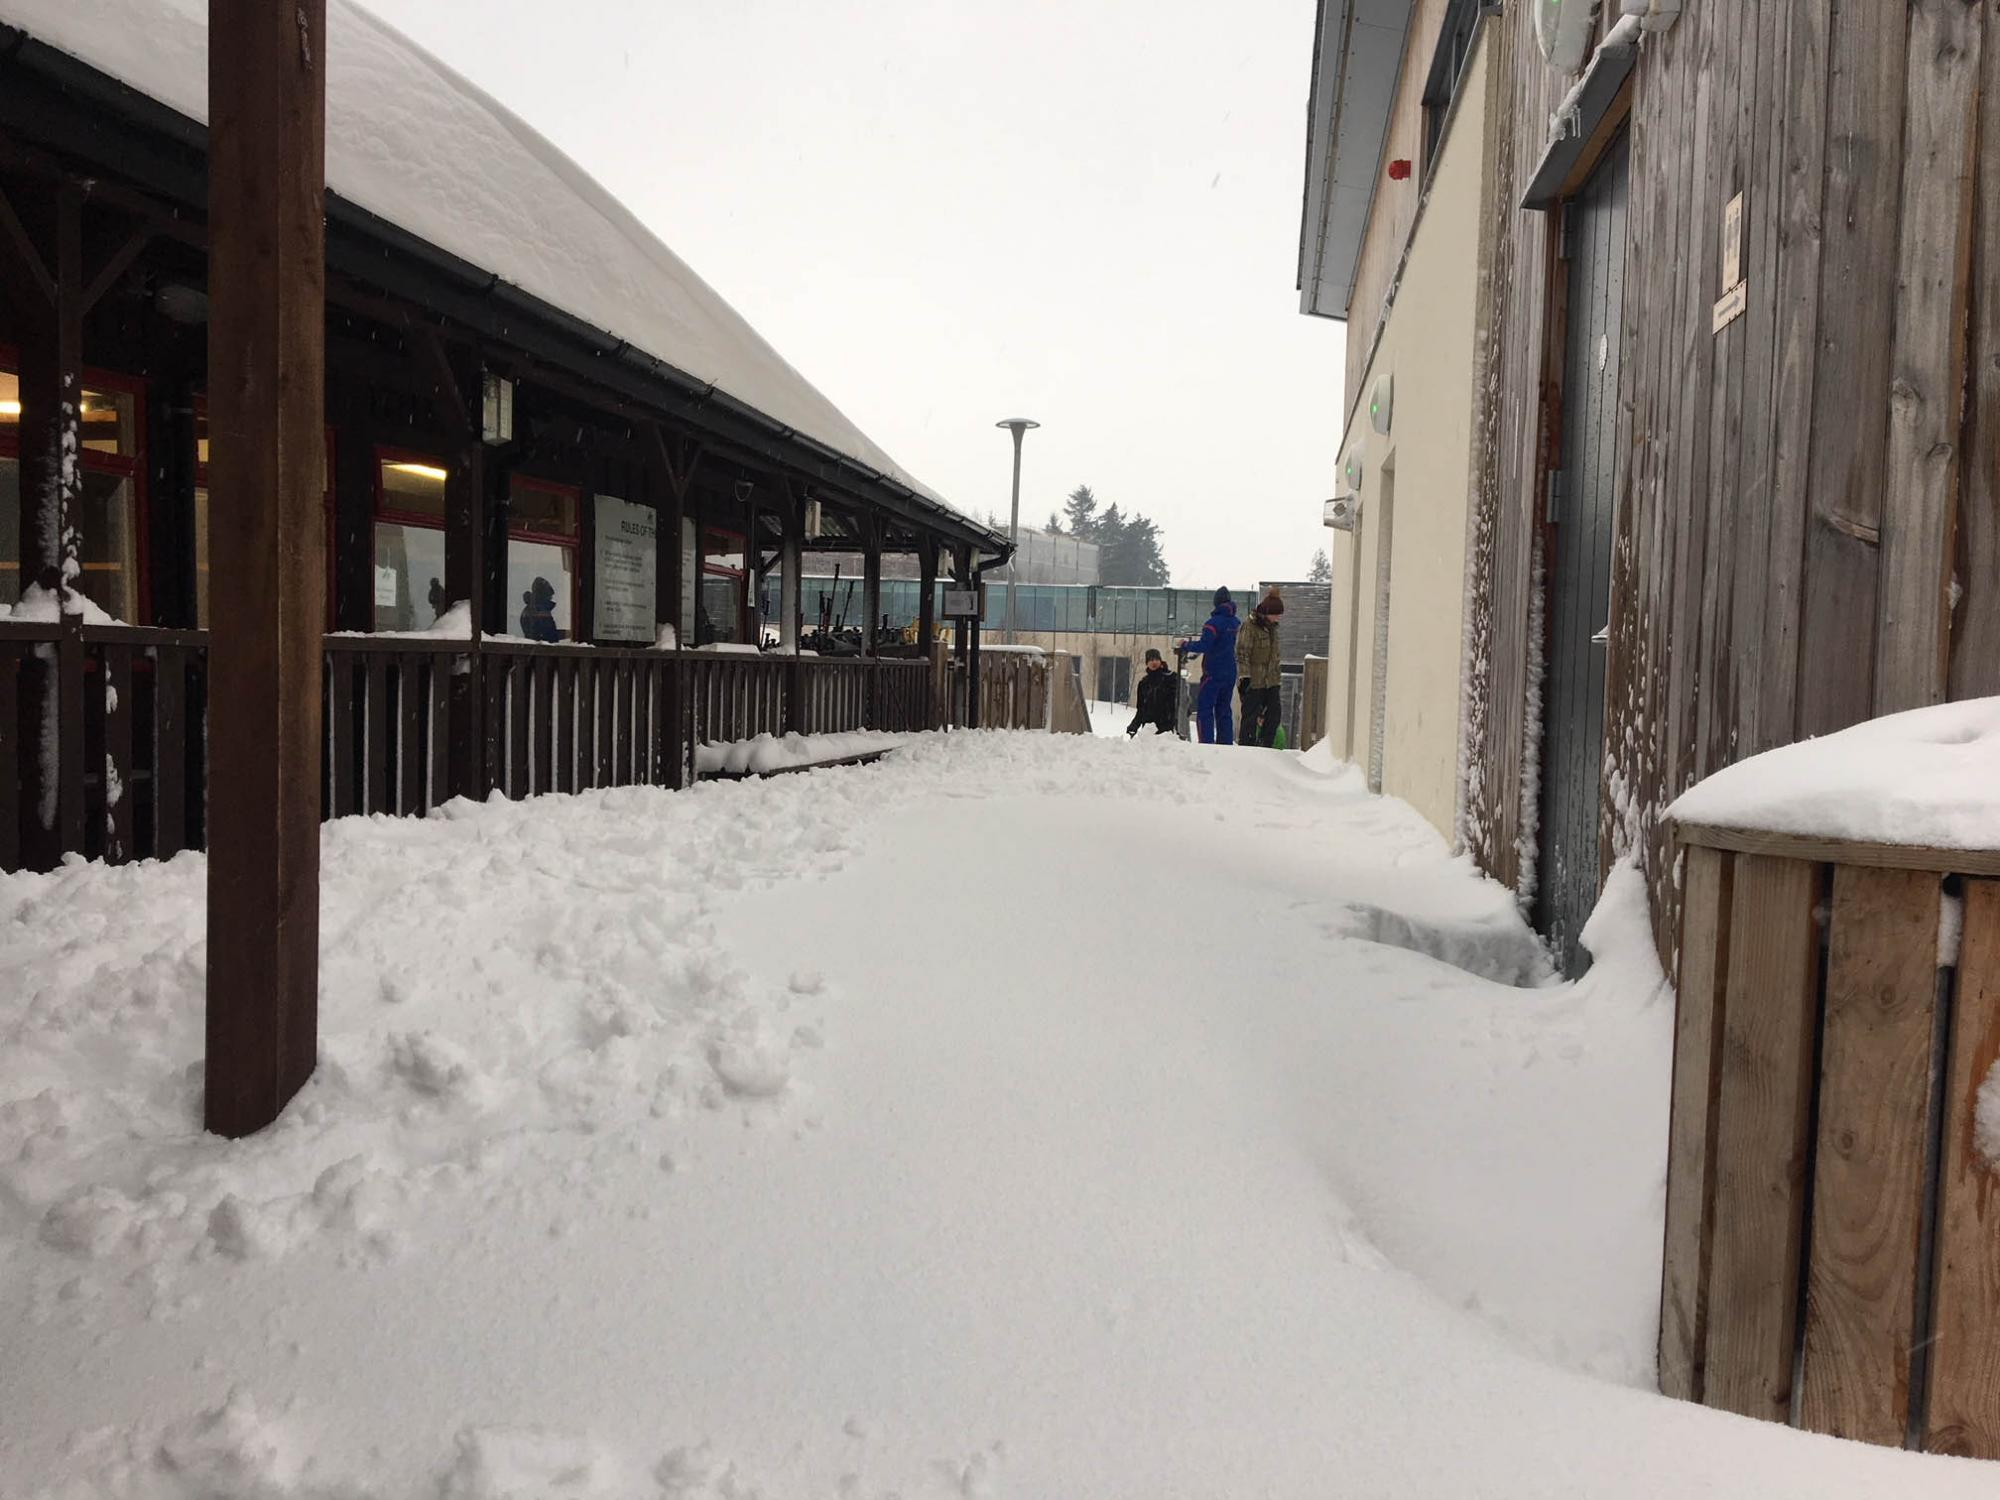 Lots of snow around the club house